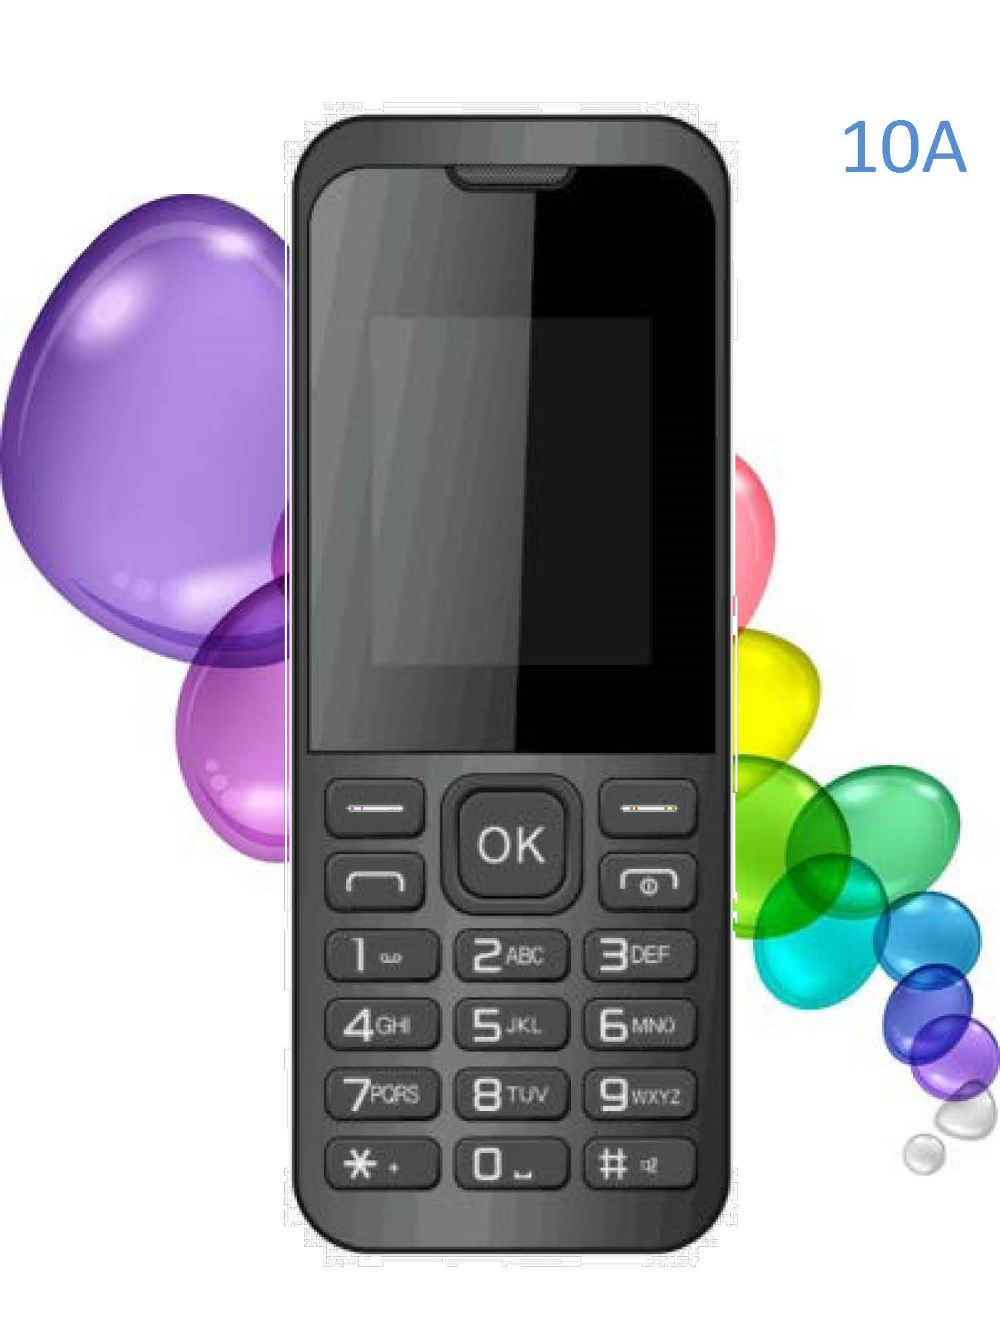 OEM 1.8 inch GSM Low cost Feature Phone Bar Type Quad Band Dual Sim Card Memory Metallic Basic Phone 10AF